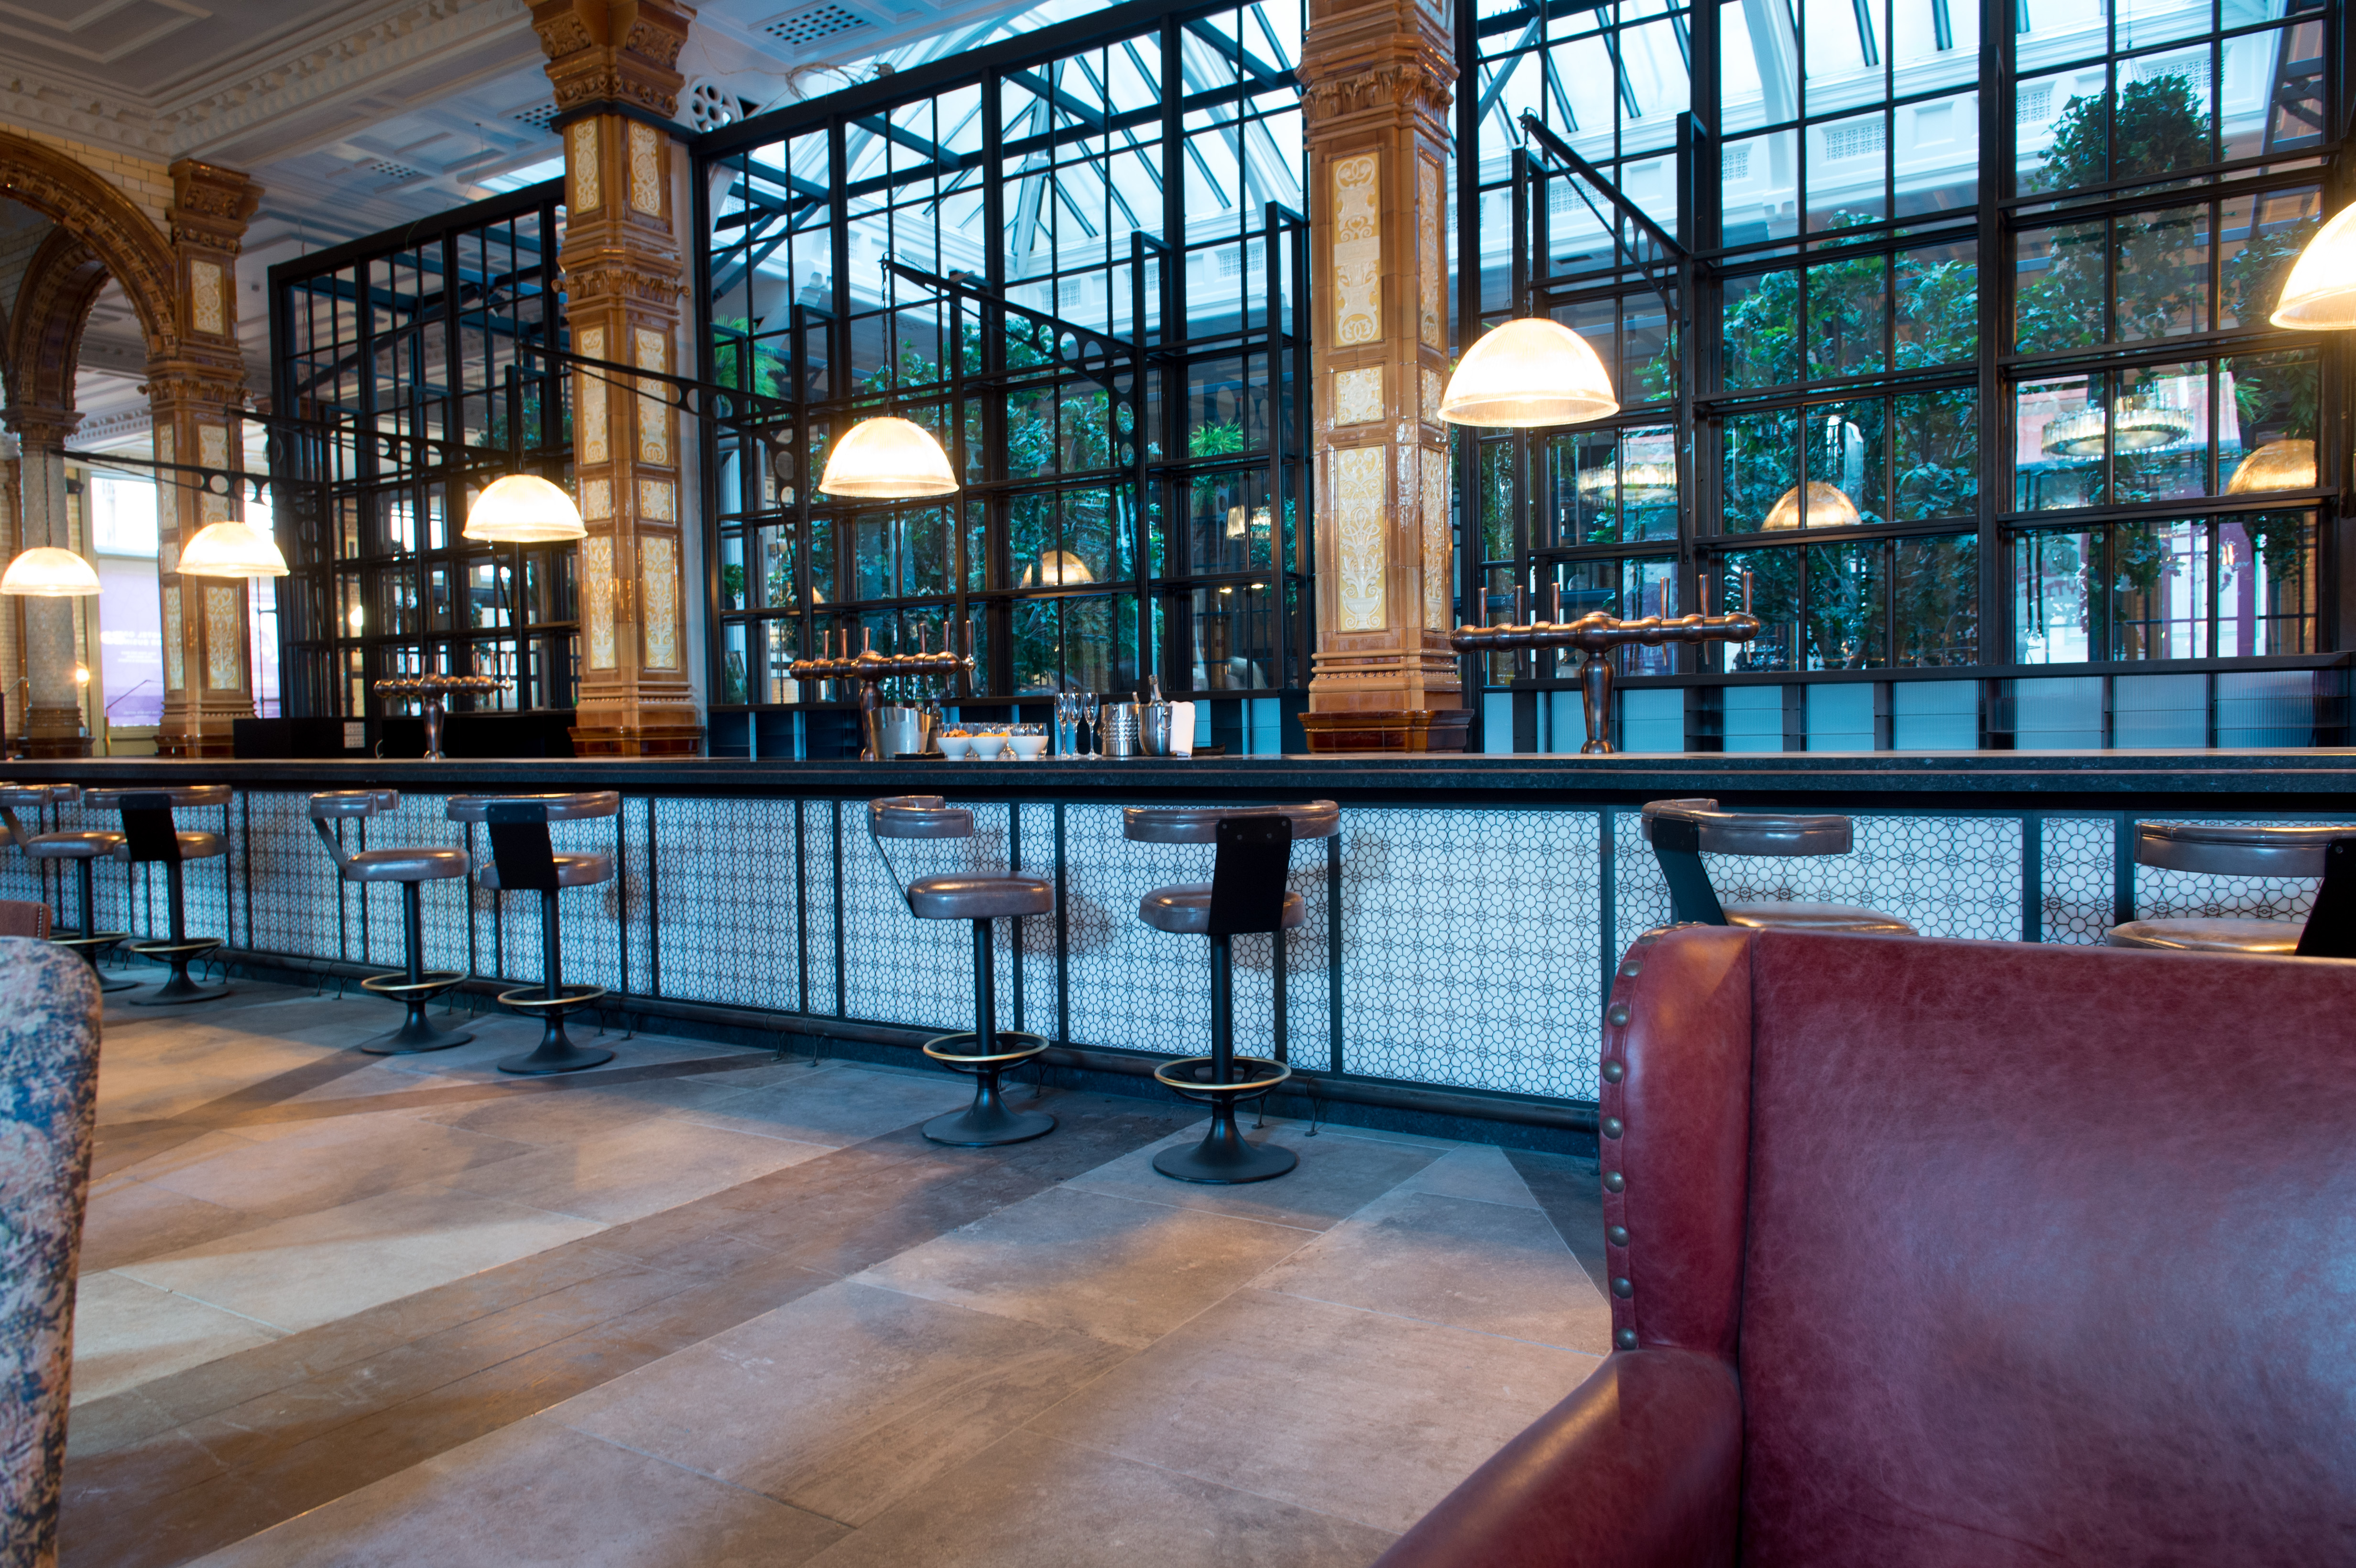 The Refuge Restaurant At Palace Hotel Manchester